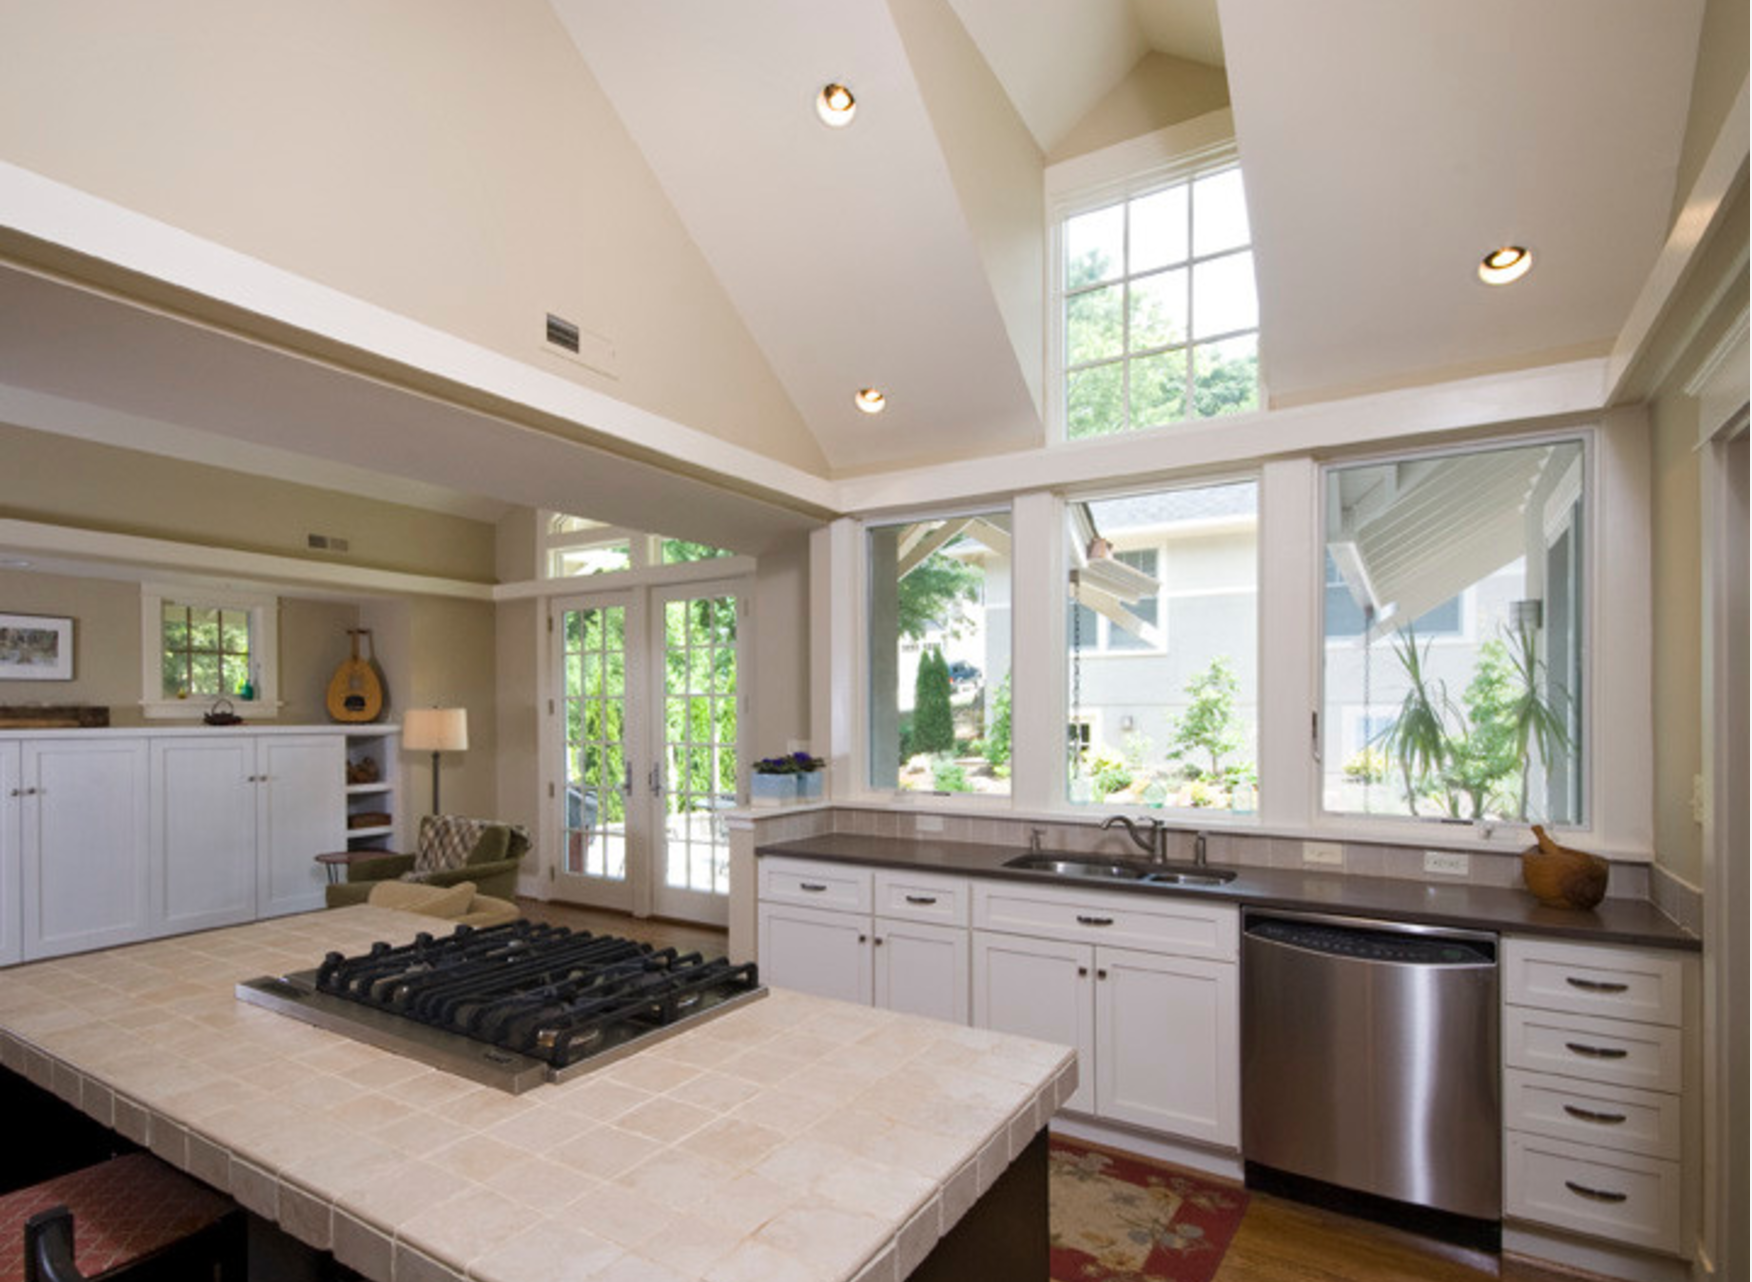 large windows no upper cabinets in kitchen cottage interiors upper cabinets kitchen on farmhouse kitchen no upper cabinets id=52180